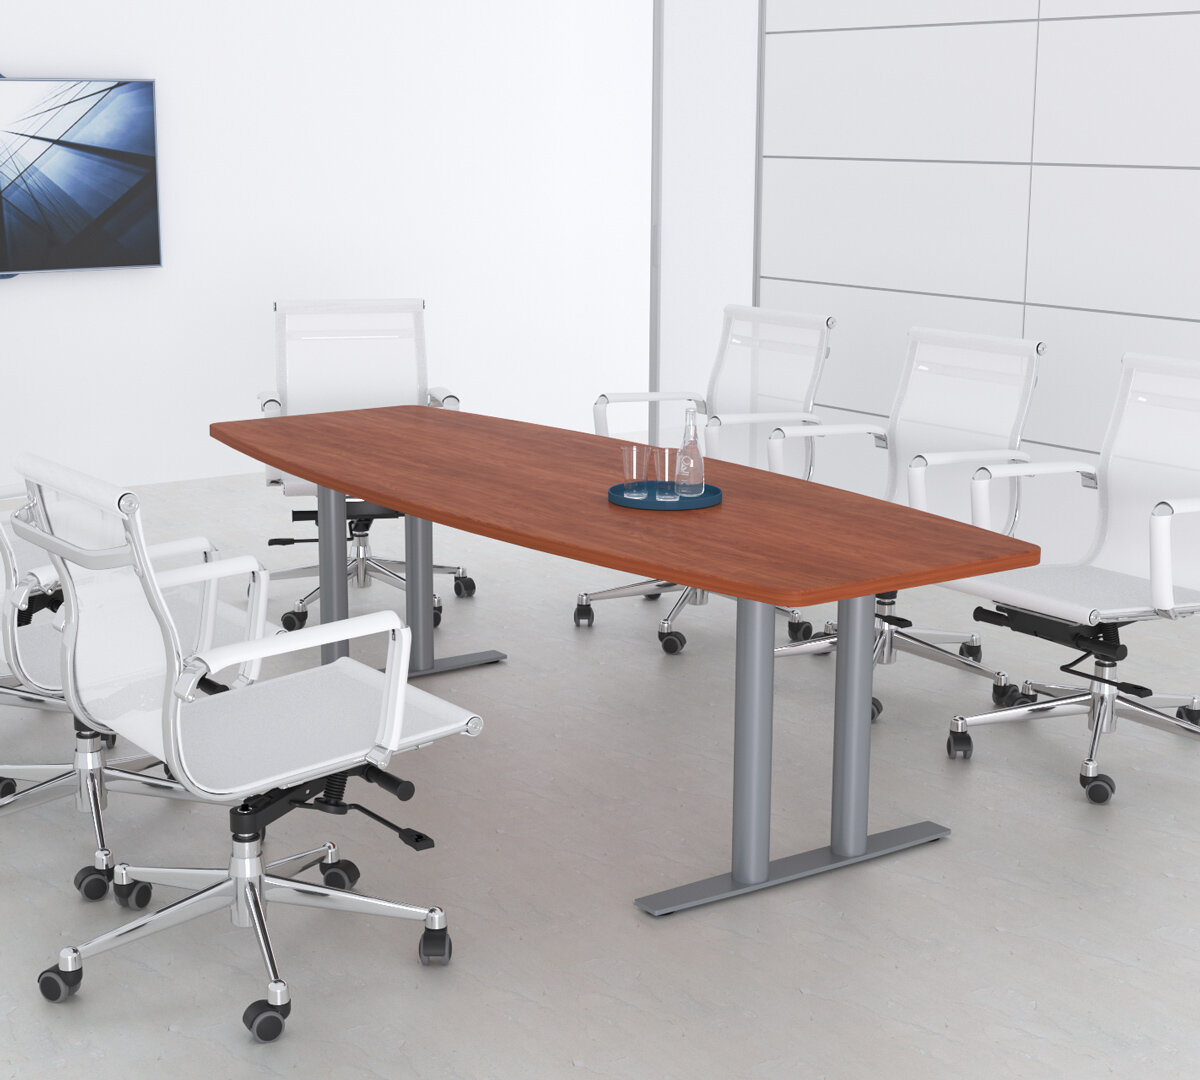 SpecialT Sienna 2TL   Conference Table